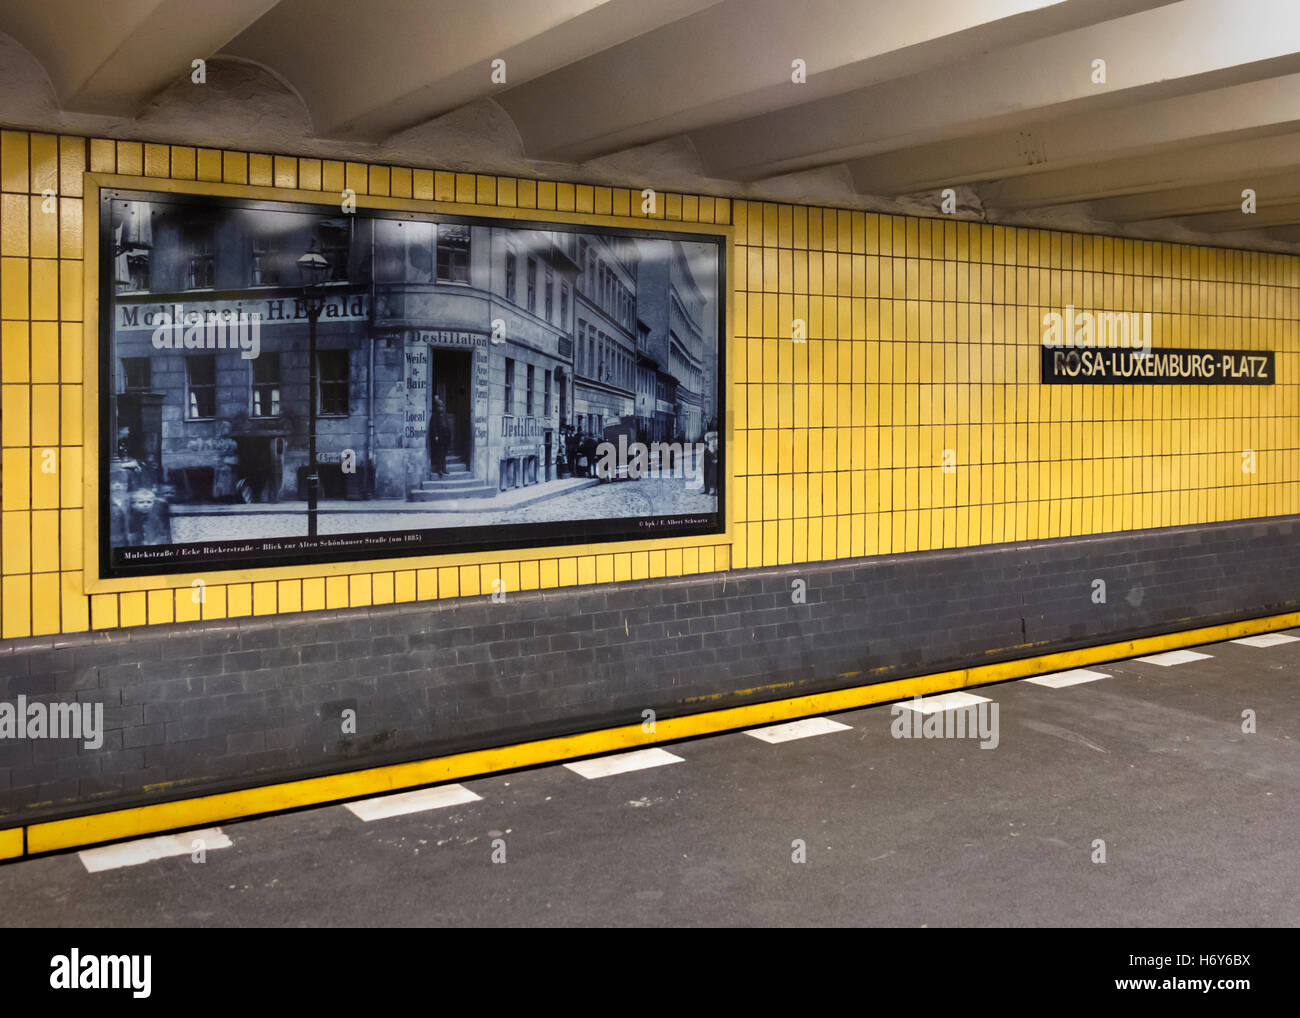 Berlin, Rosa-Luxemburg-Platz U-bahn U2 underground railway station with old monochrome photographs and yellow tiles - Stock Image